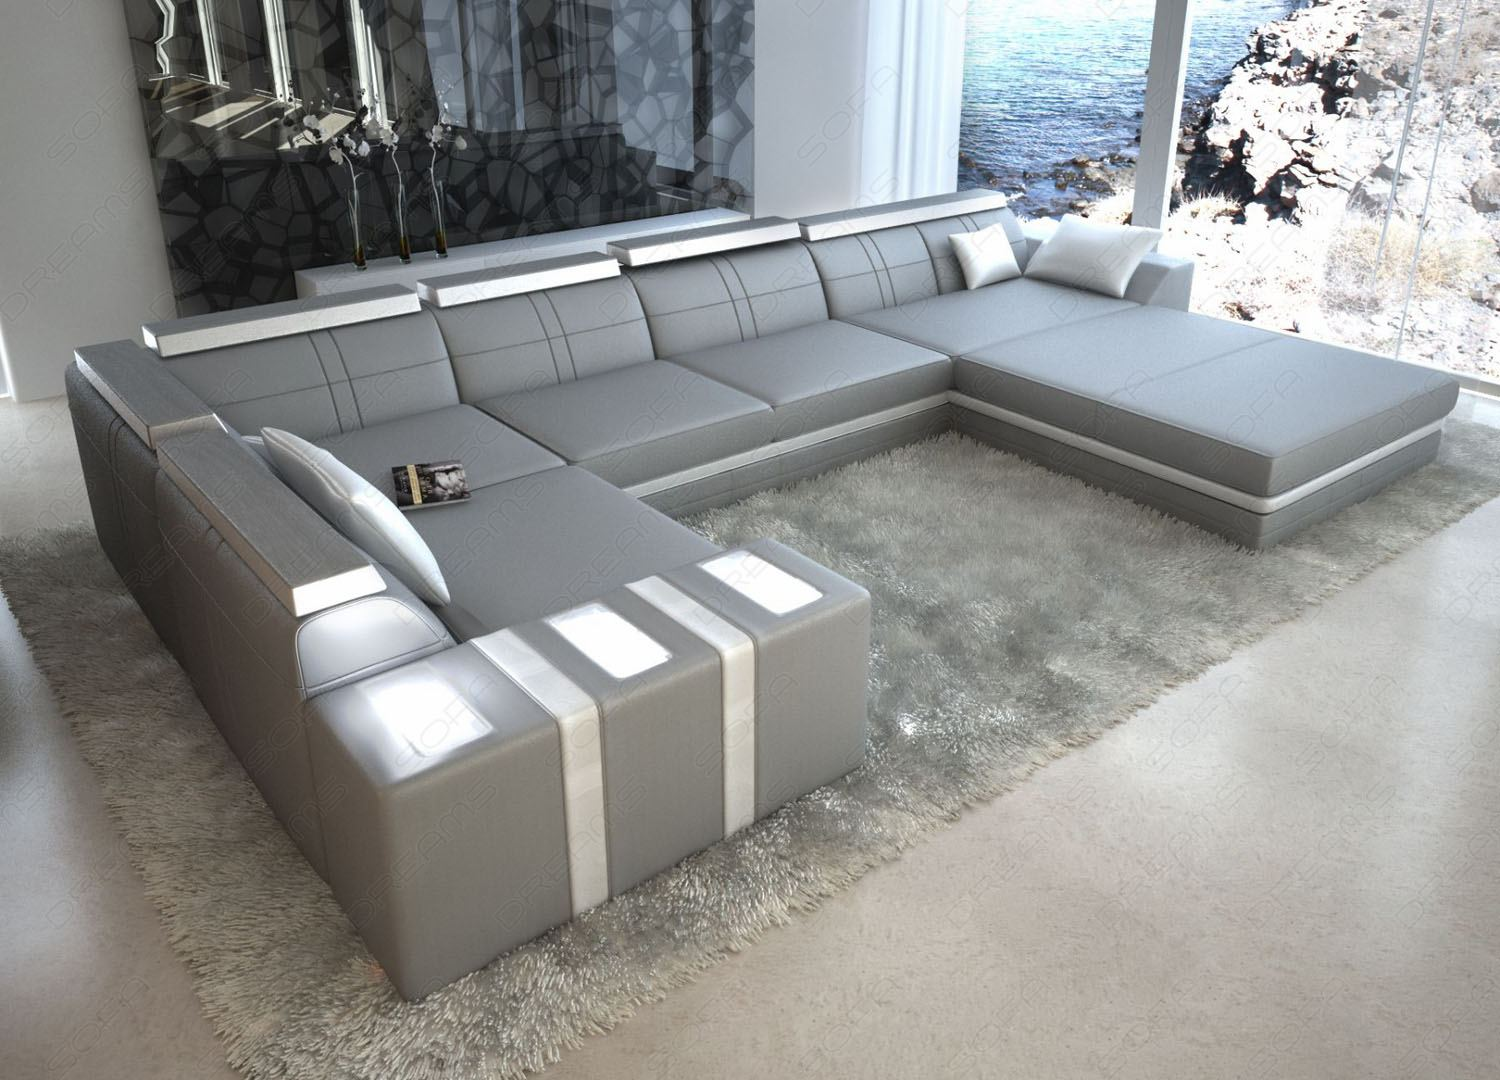 leather sofa asti u shaped grey white interior design lighting ebay. Black Bedroom Furniture Sets. Home Design Ideas